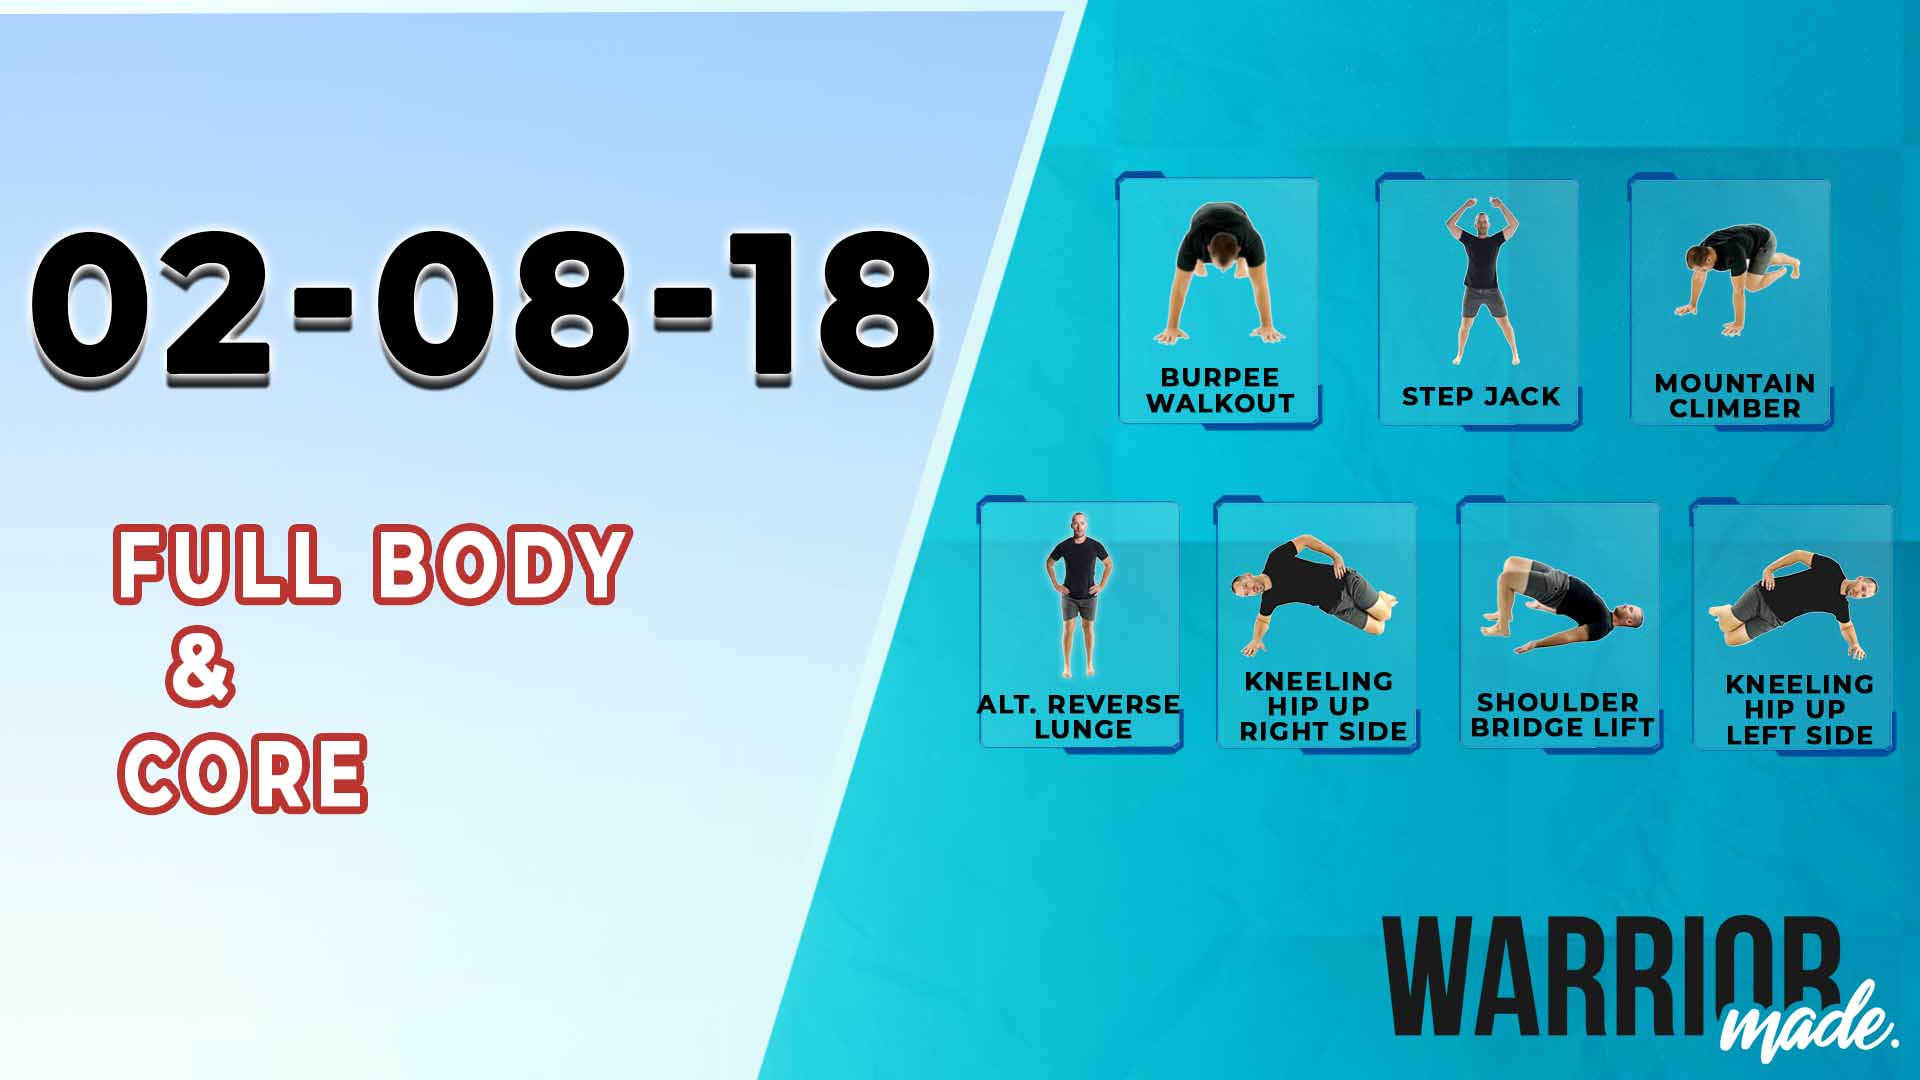 workouts-02-08-19